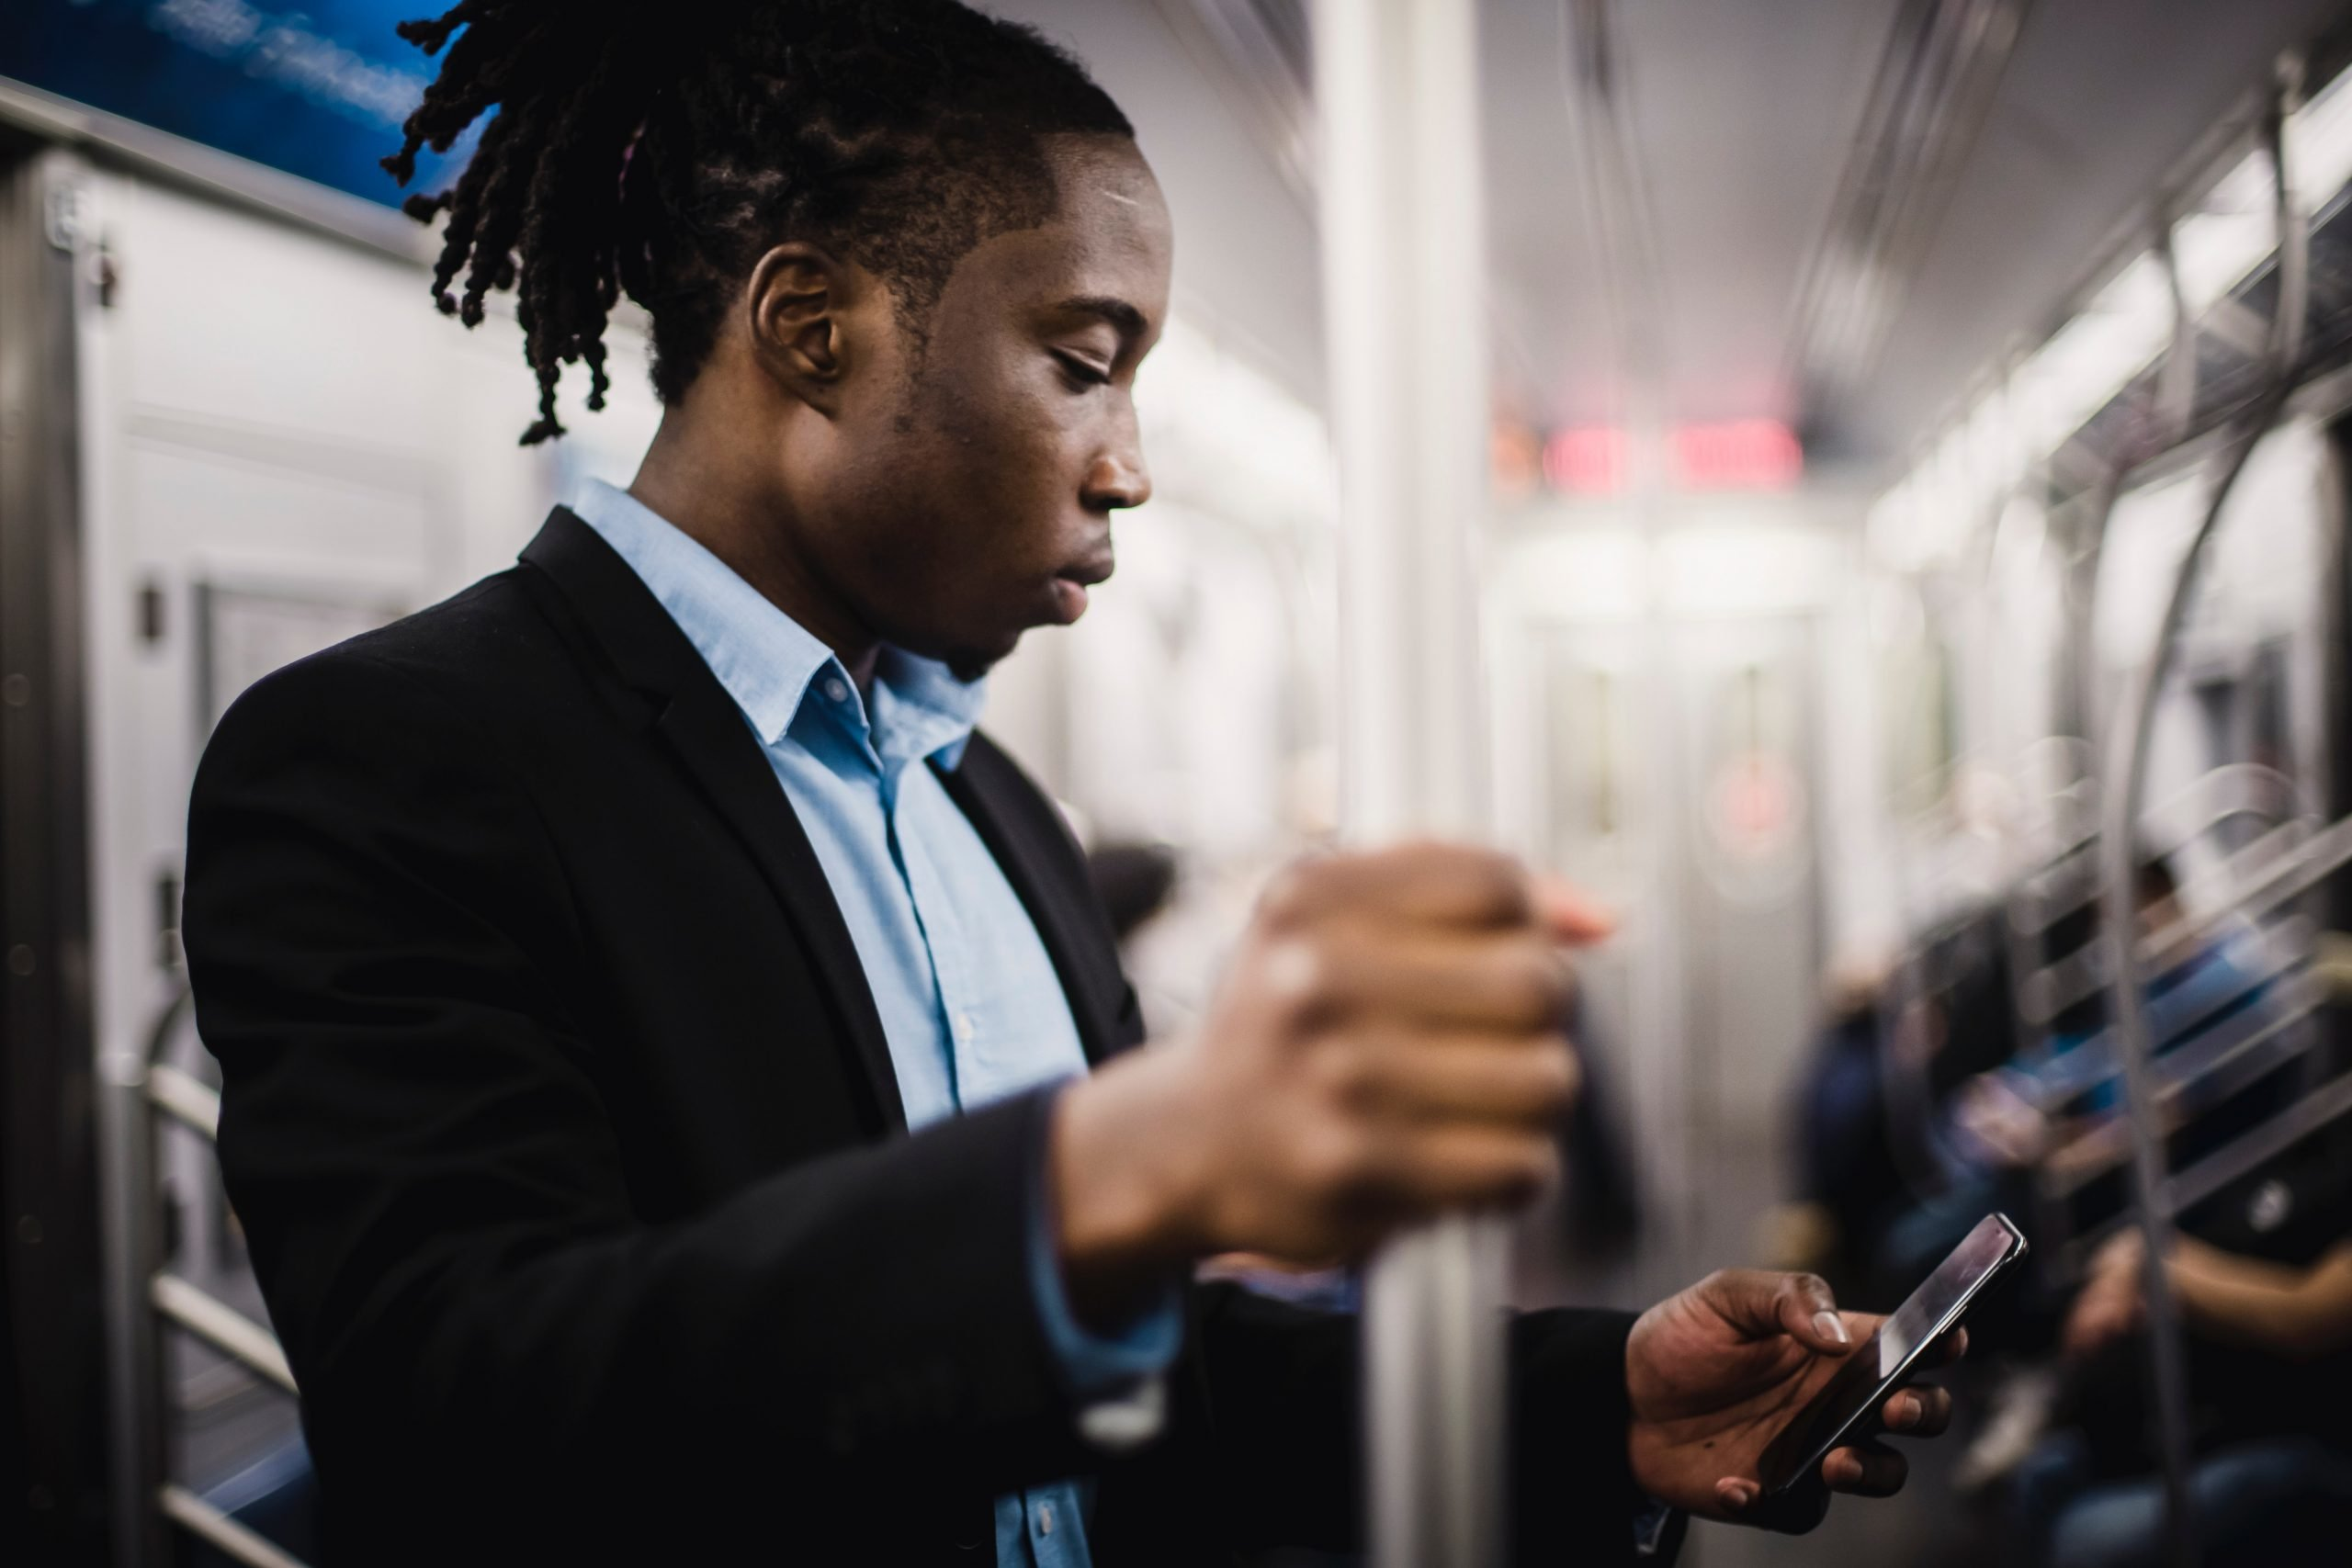 Black man on bus, looking at phone and holding standing rail